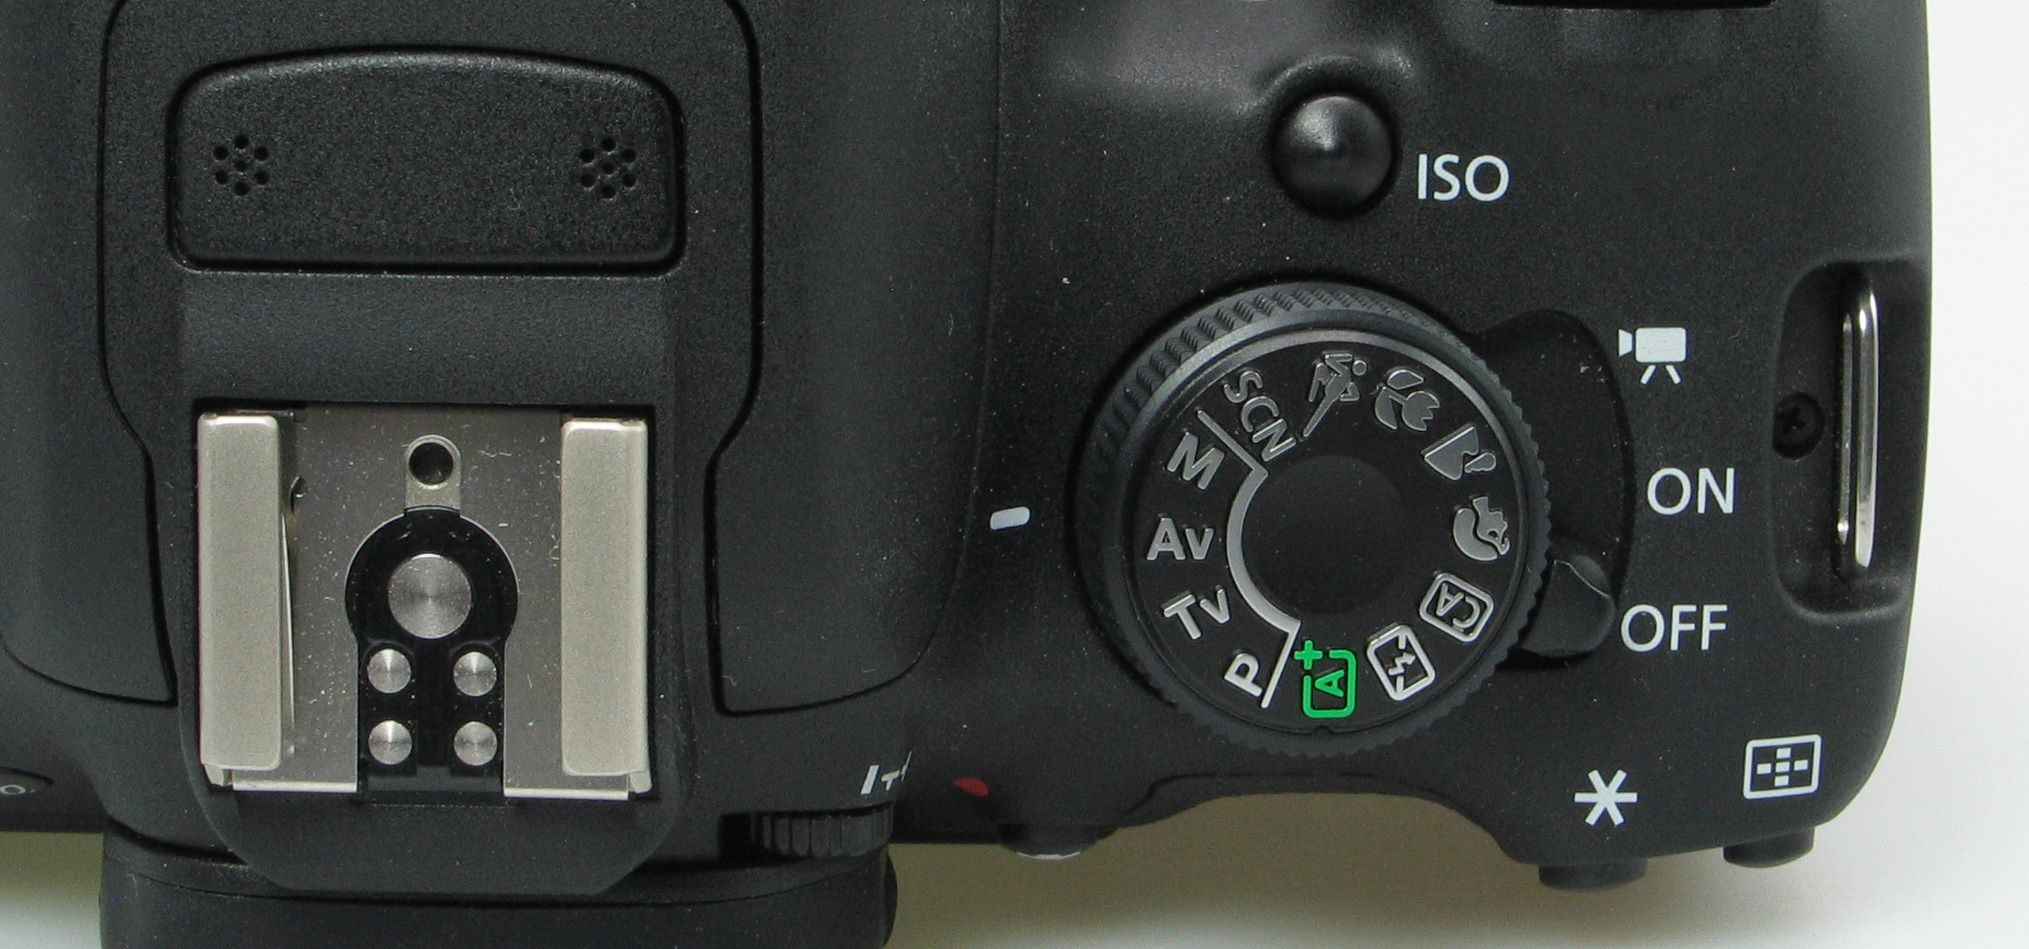 Camera Hot Shoe : Digital camera glossary what is a hot shoe flash